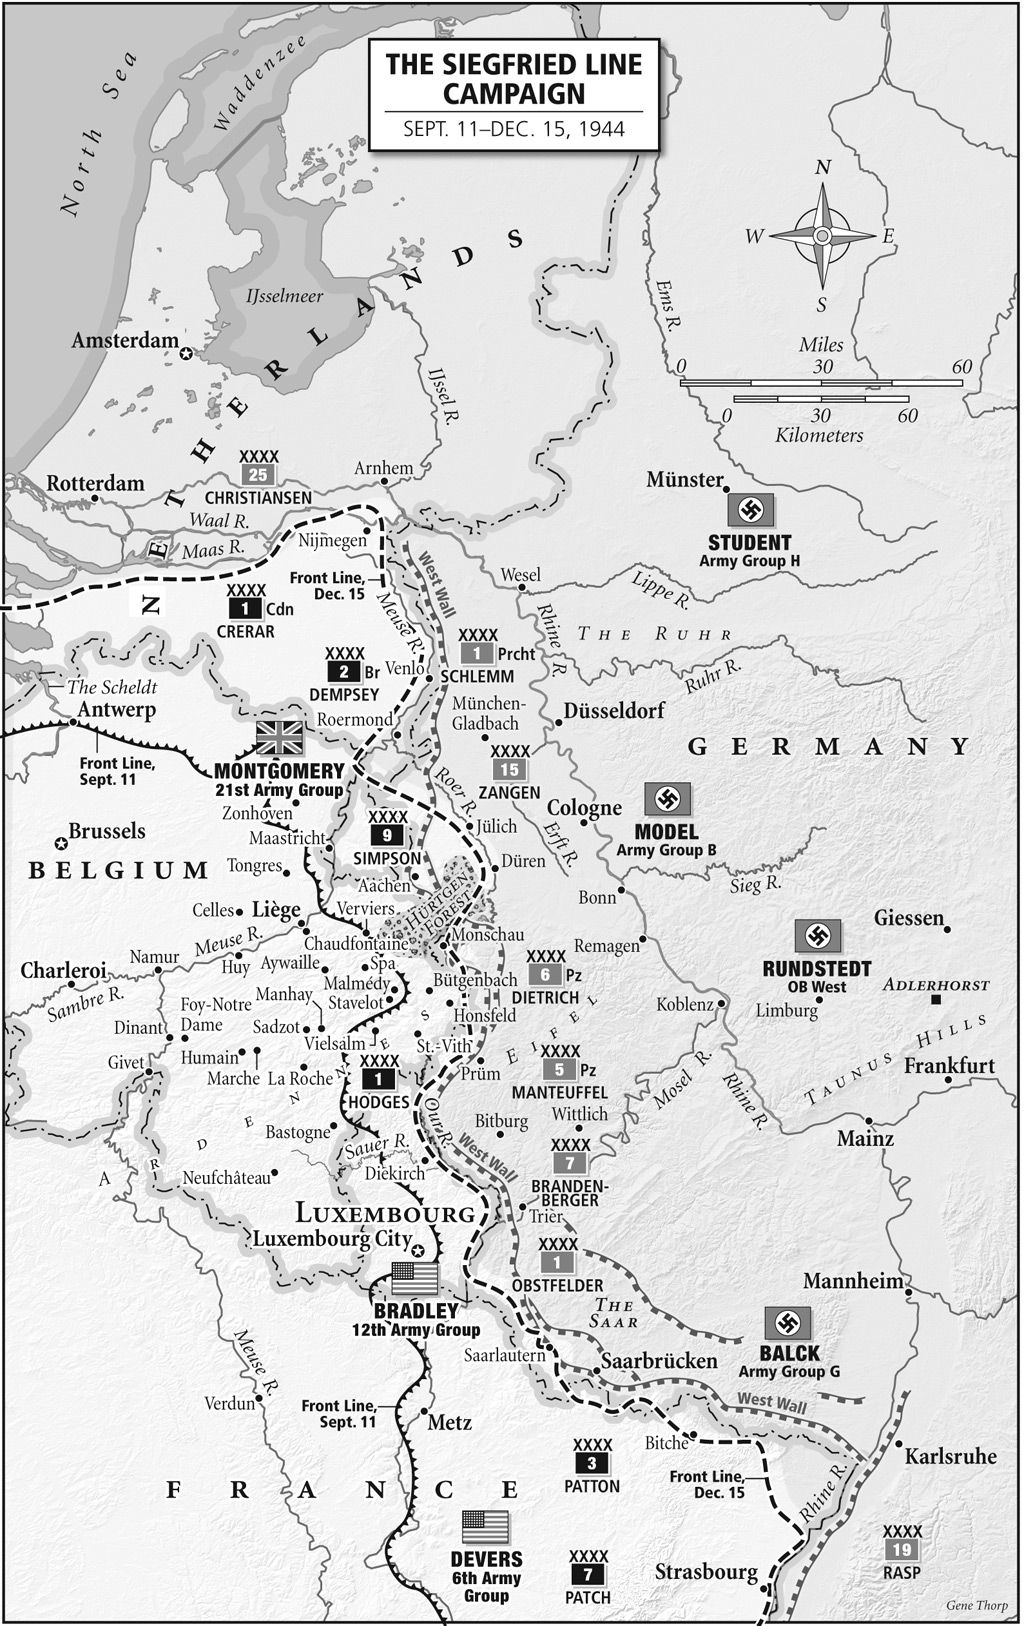 Hurtgen forest 1944 google search huertgen forest pinterest hurtgen forest 1944 google search siegfried lineworld war iicanadian gumiabroncs Choice Image